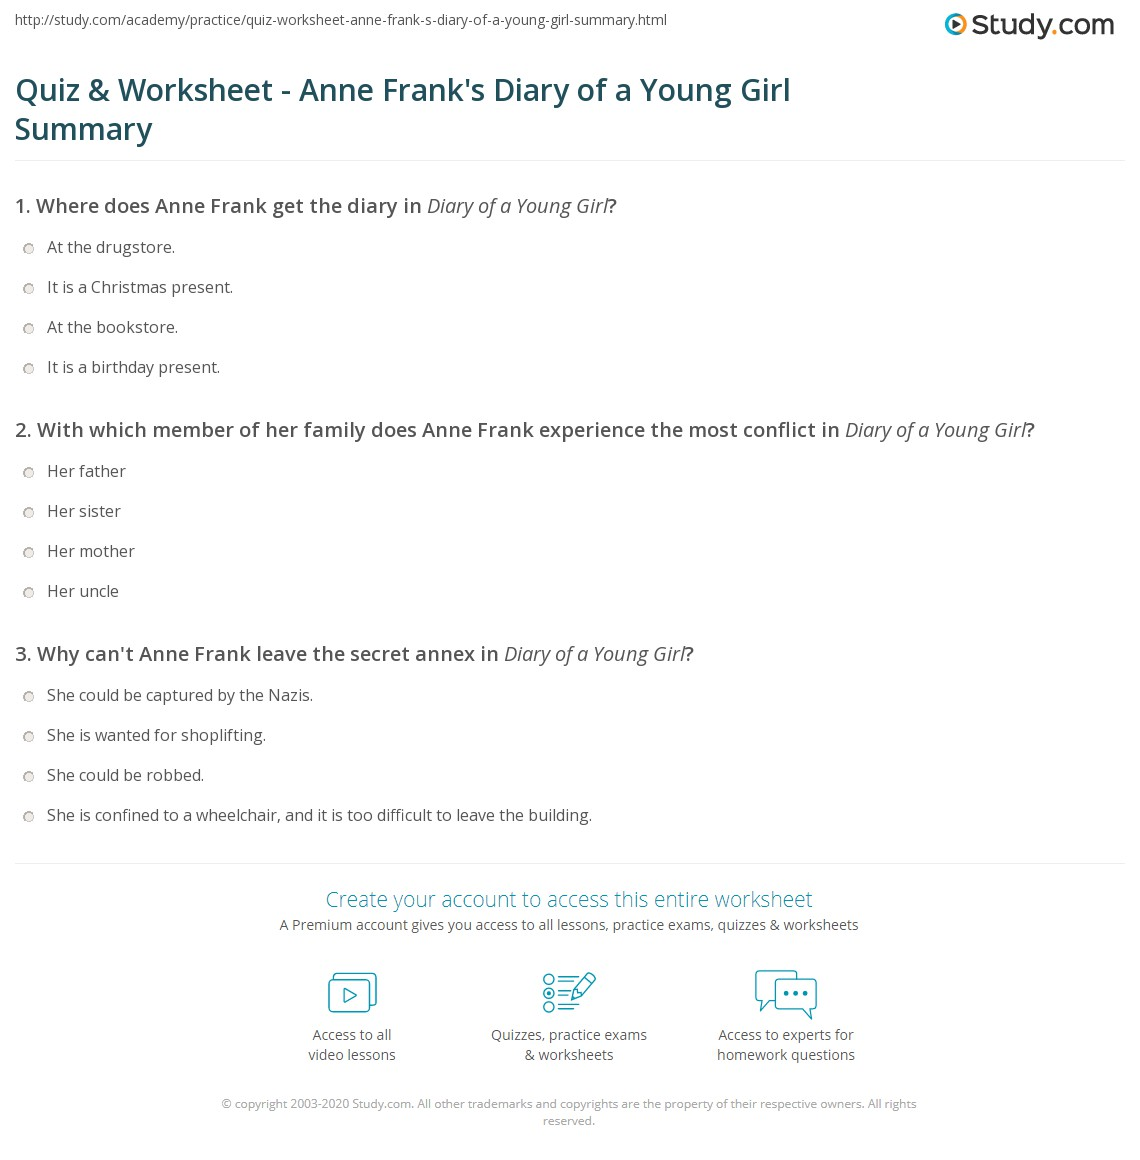 worksheet Summary Worksheet quiz worksheet anne franks diary of a young girl summary print worksheet